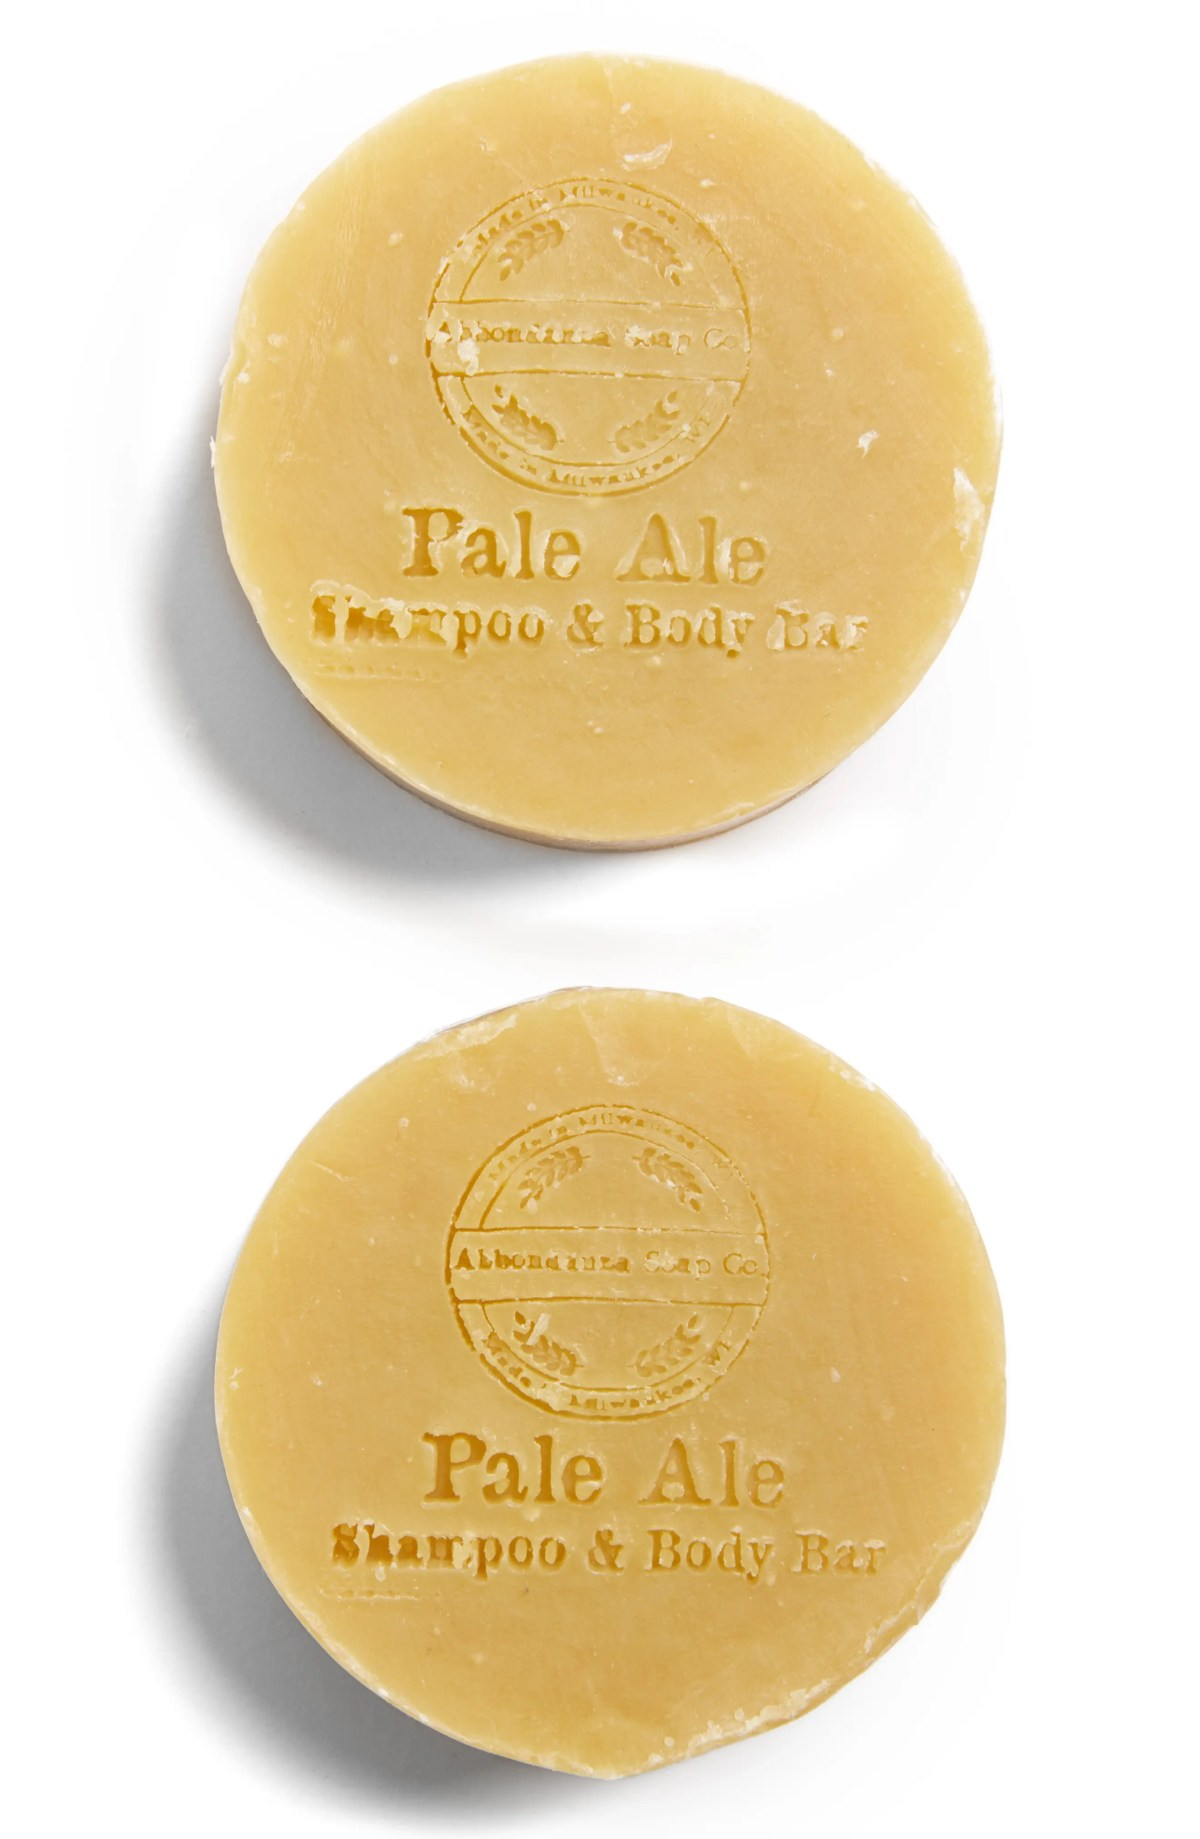 PACKAGE FREE x Package Free x Abbondanza Soap Co. 2-Pack Pale Ale Shampoo & Body Bar, Main, color, NONE